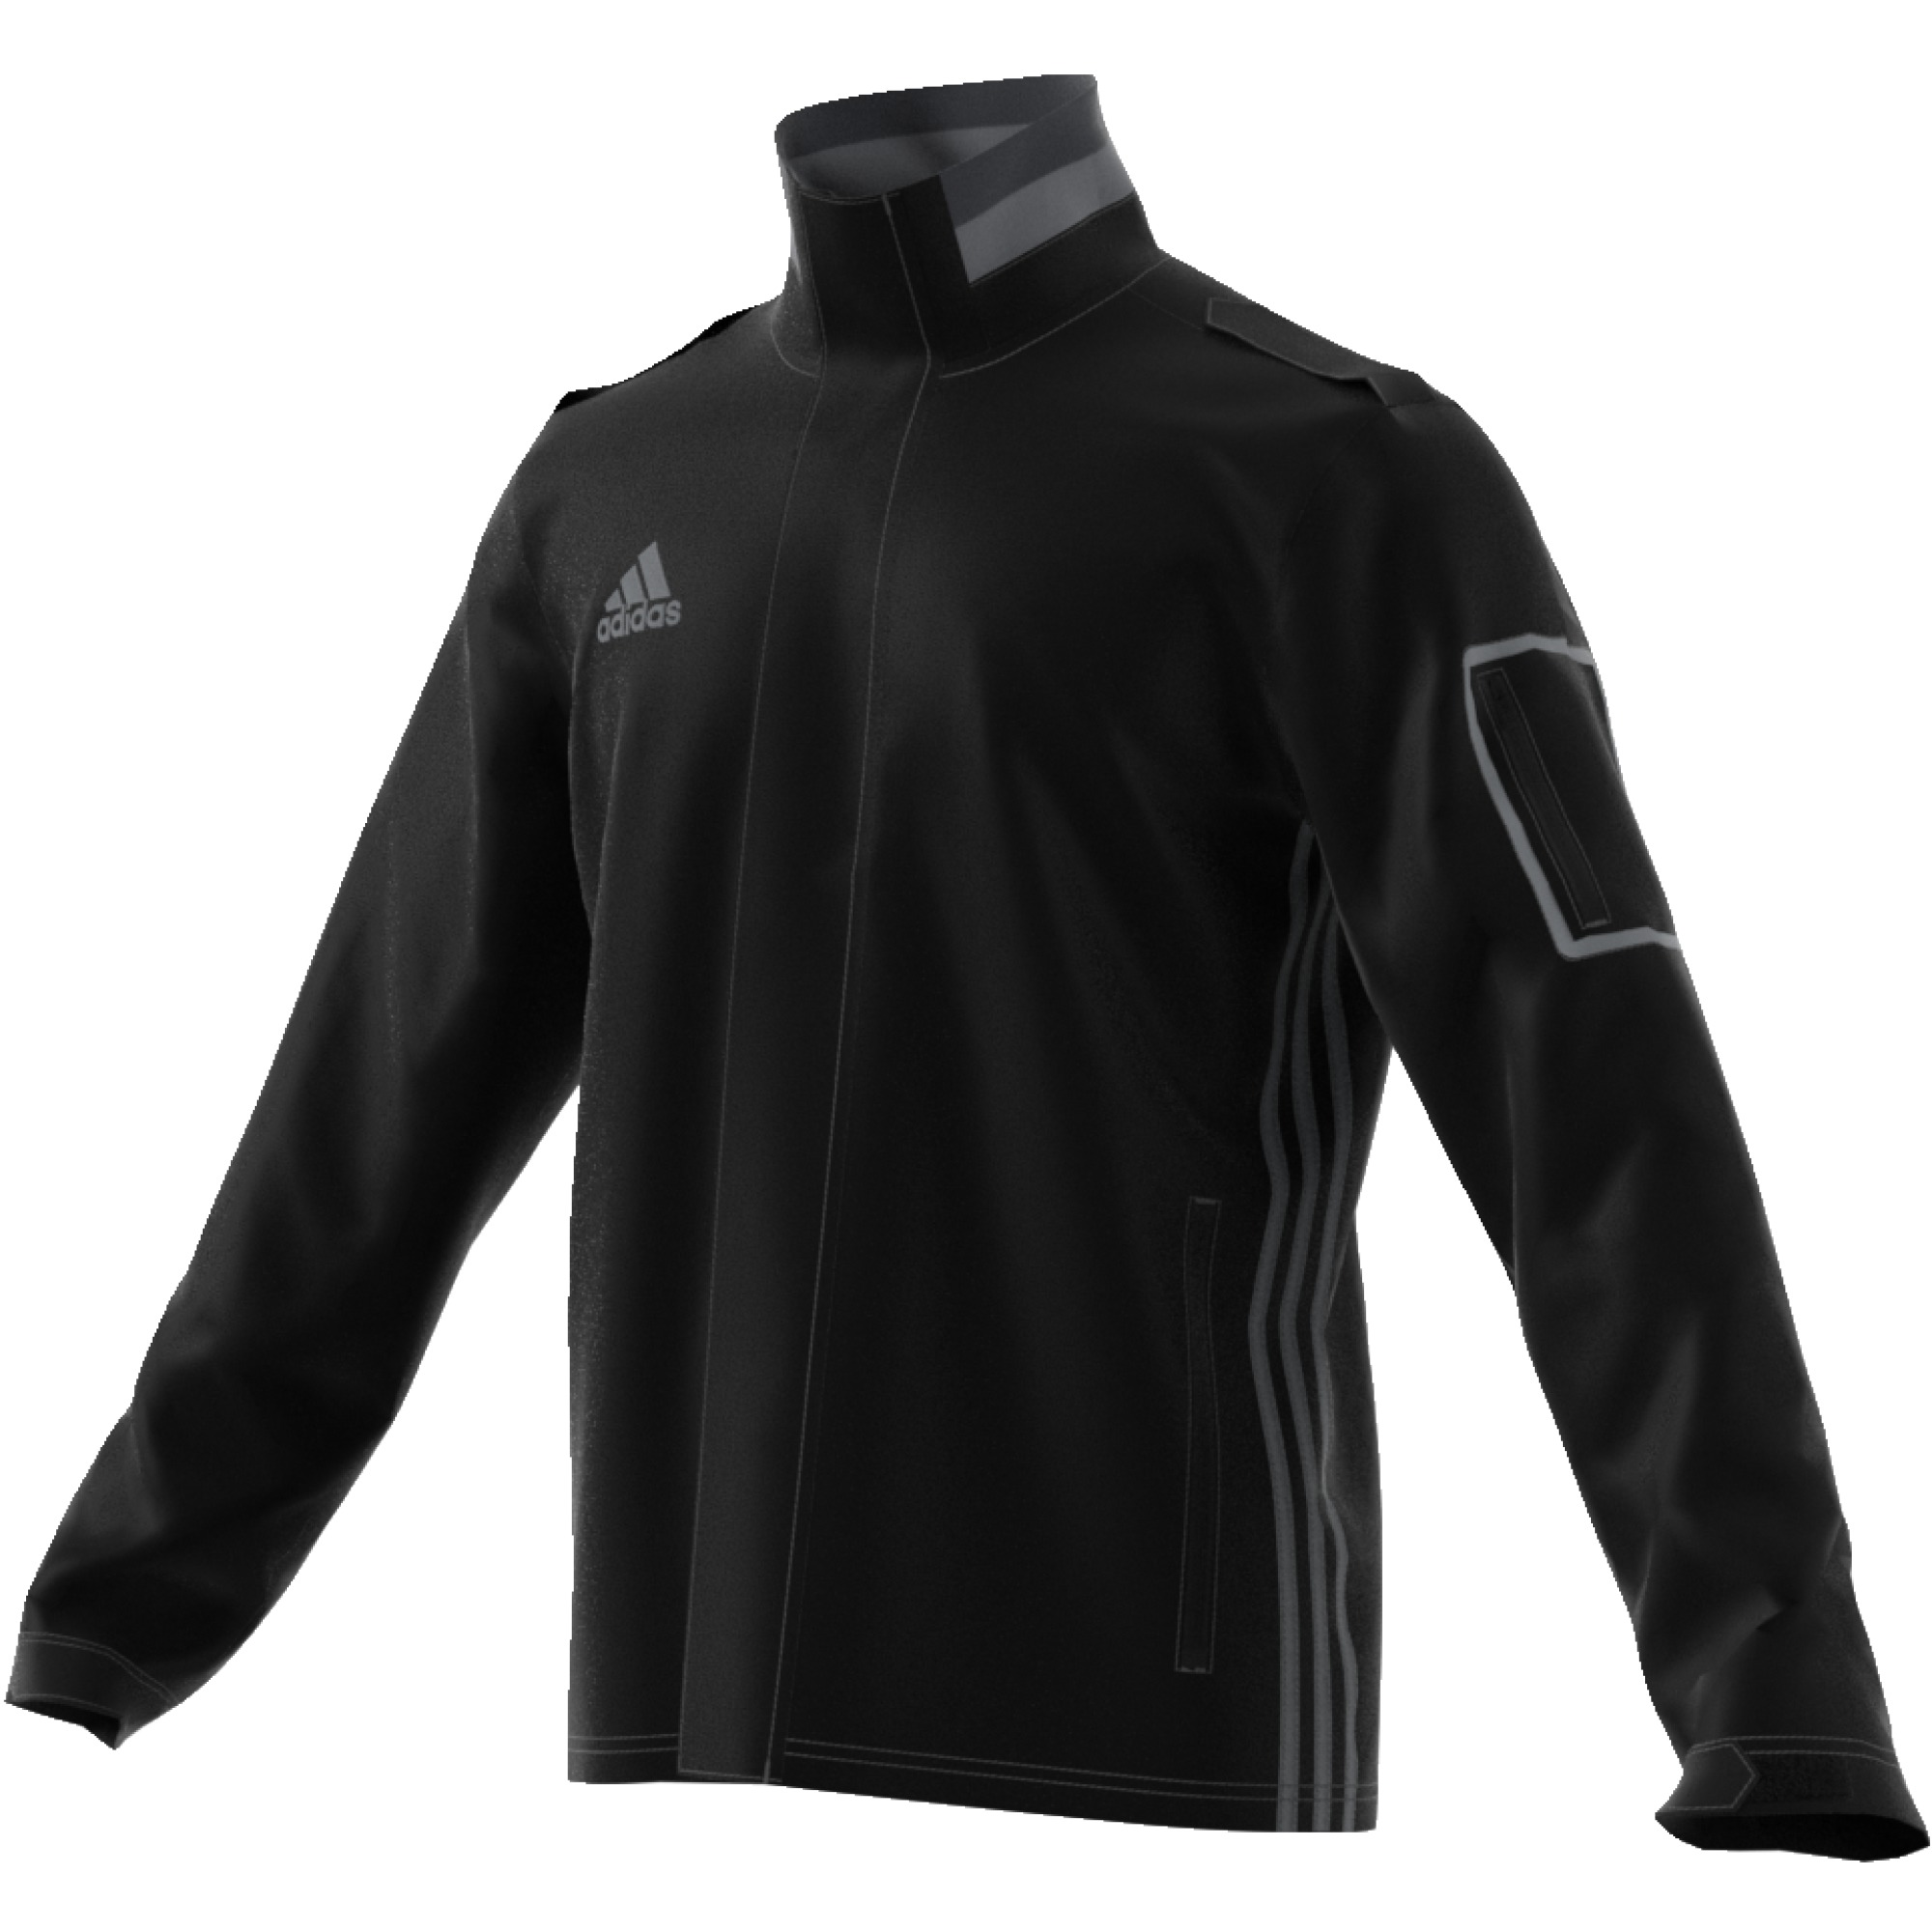 Jacket Adidas Regista Pes 18 Survêtement Veste q68xgw08